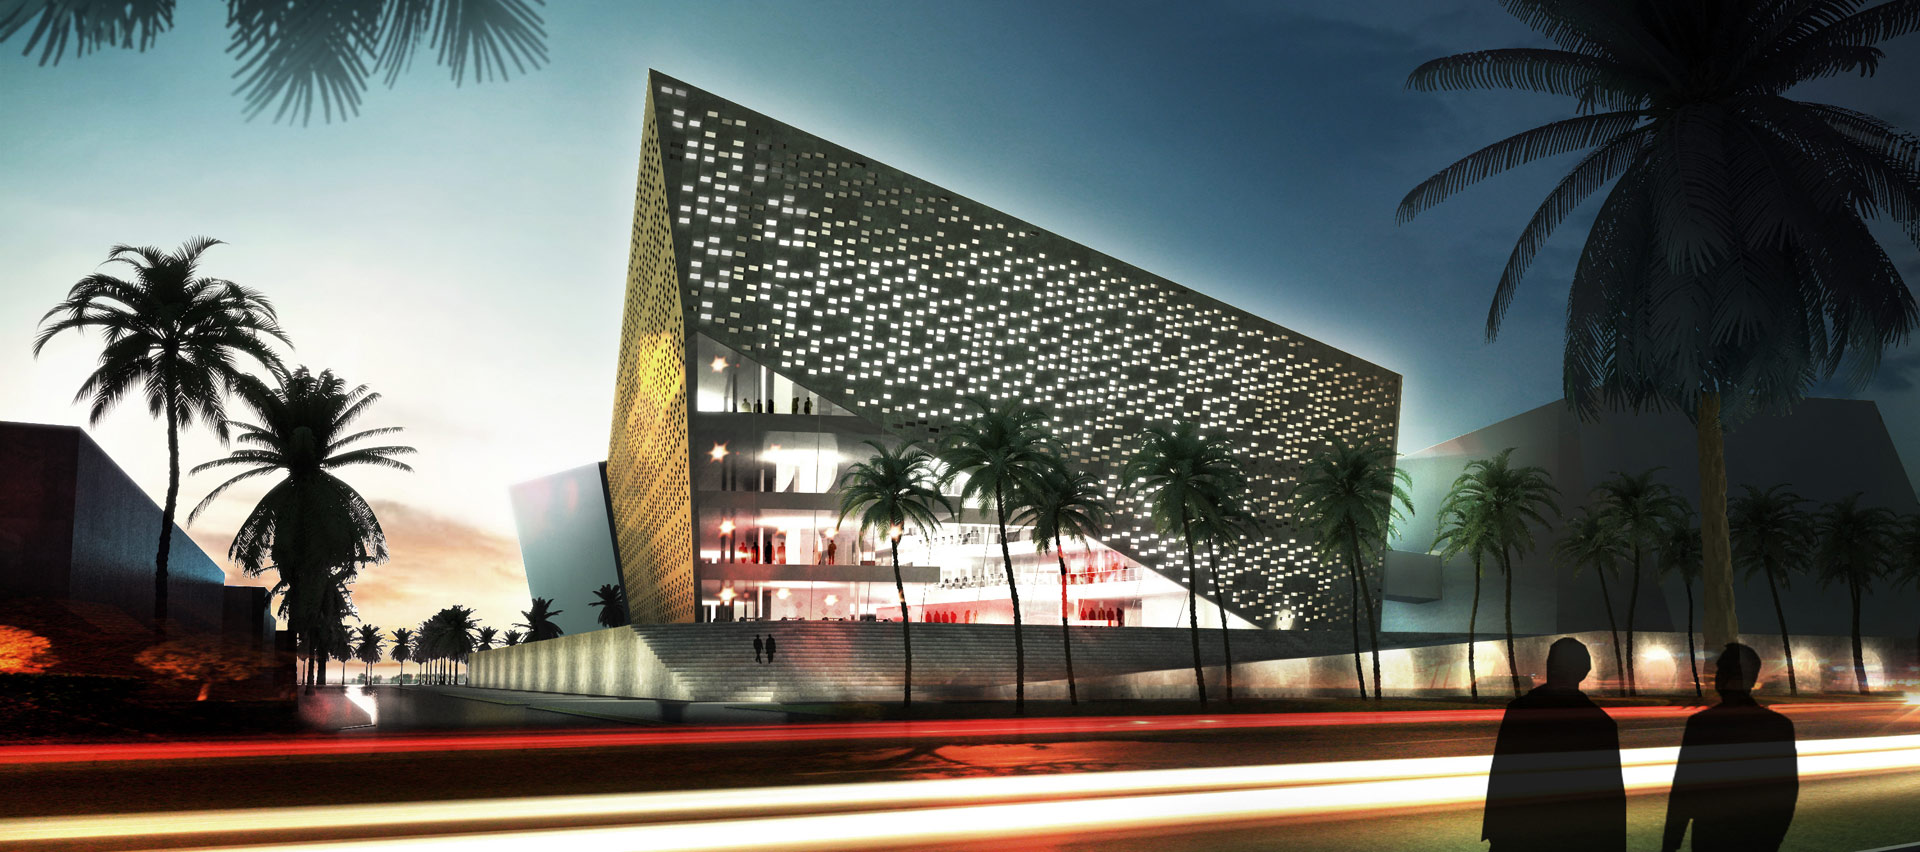 furniture riyadh with Prince Naif Centre Henning Larsen Architects on Prince Naif Centre Henning Larsen Architects together with Capital Market Authority Tower H291015 2 besides Haramain High Speed Railway Stations in addition Showroom also .